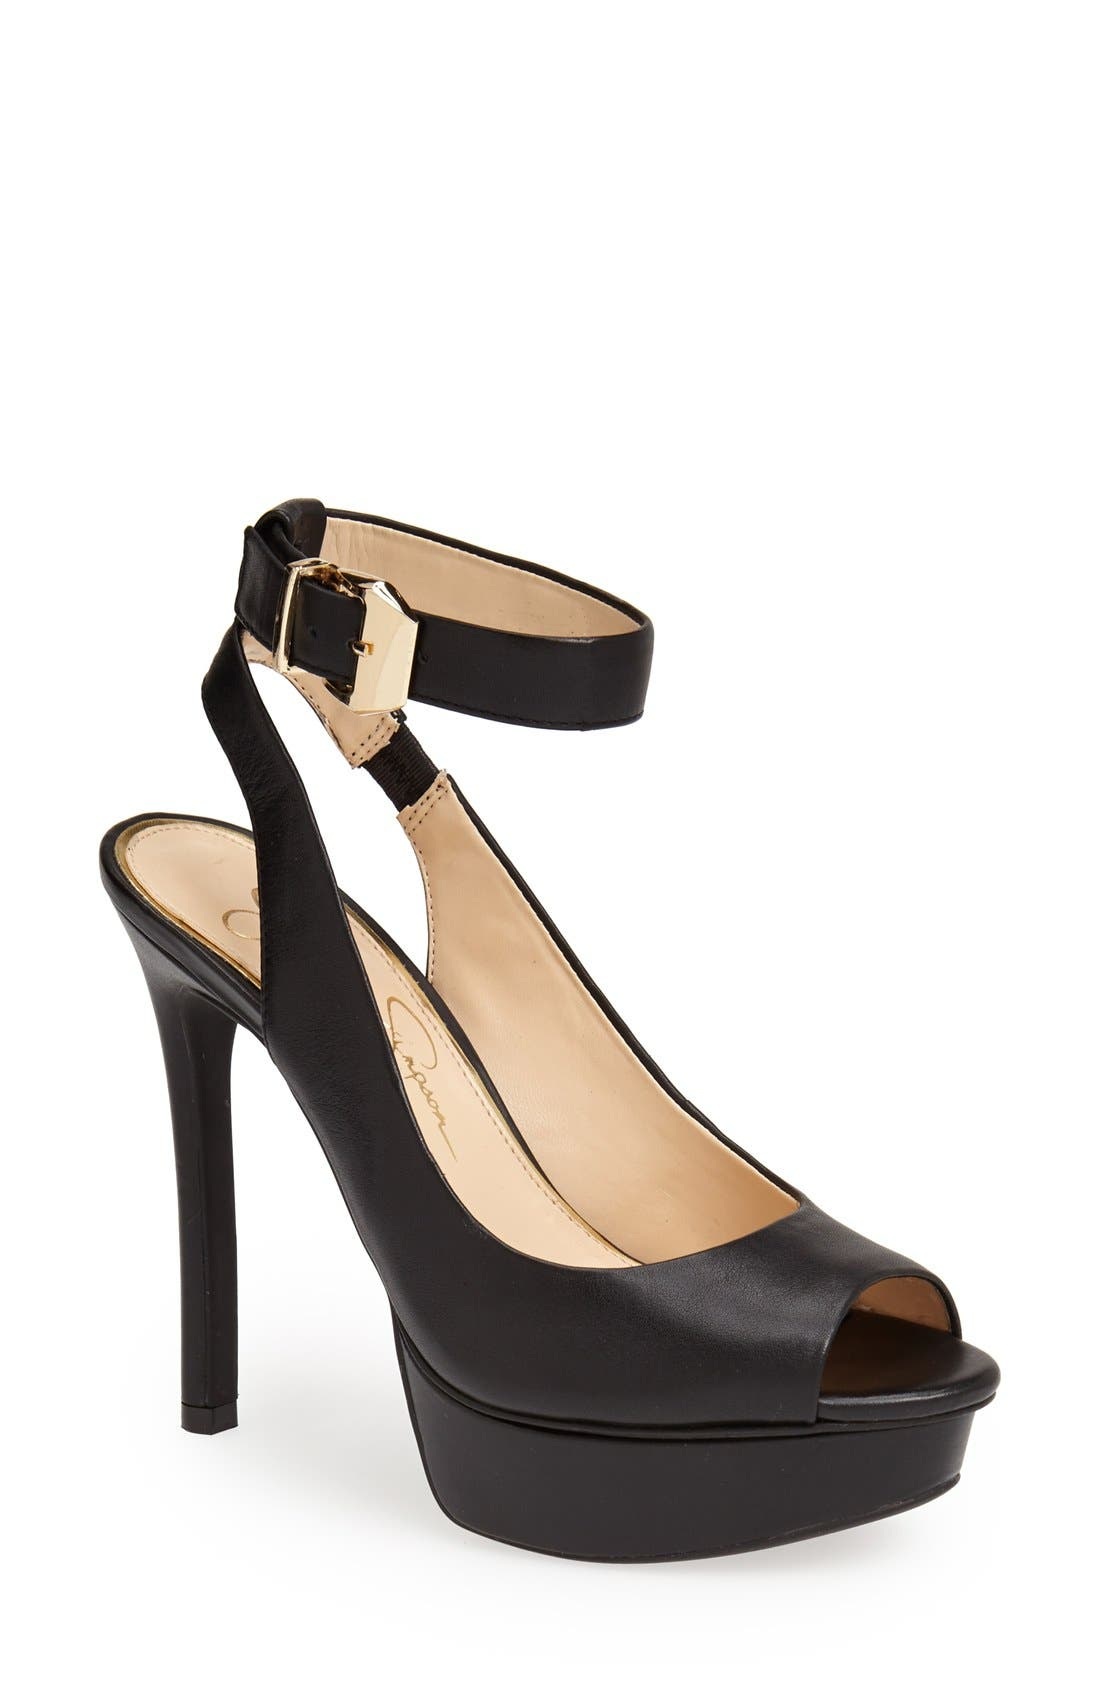 Alternate Image 1 Selected - Jessica Simpson 'Careen' Platform Sandal (Women)